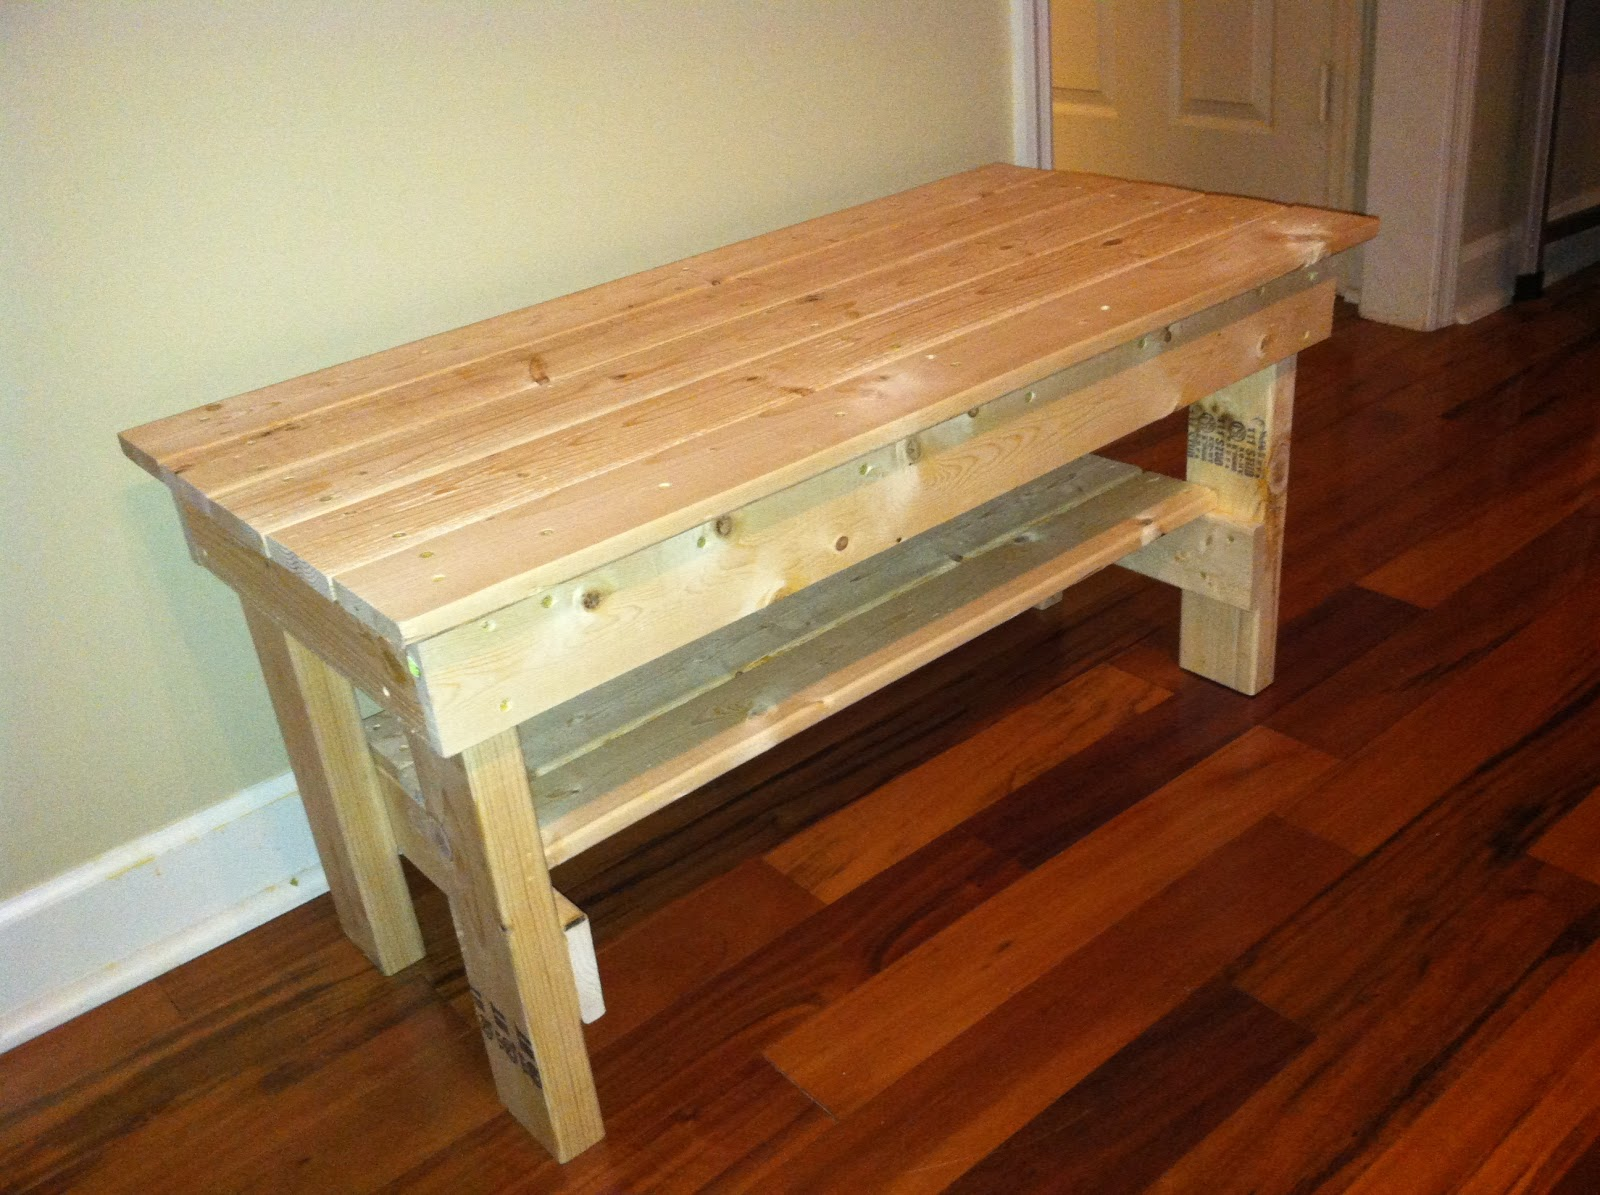 Pdf Diy Long Wooden Bench Plans Download Minwax Woodworking Plans Furnitureplans